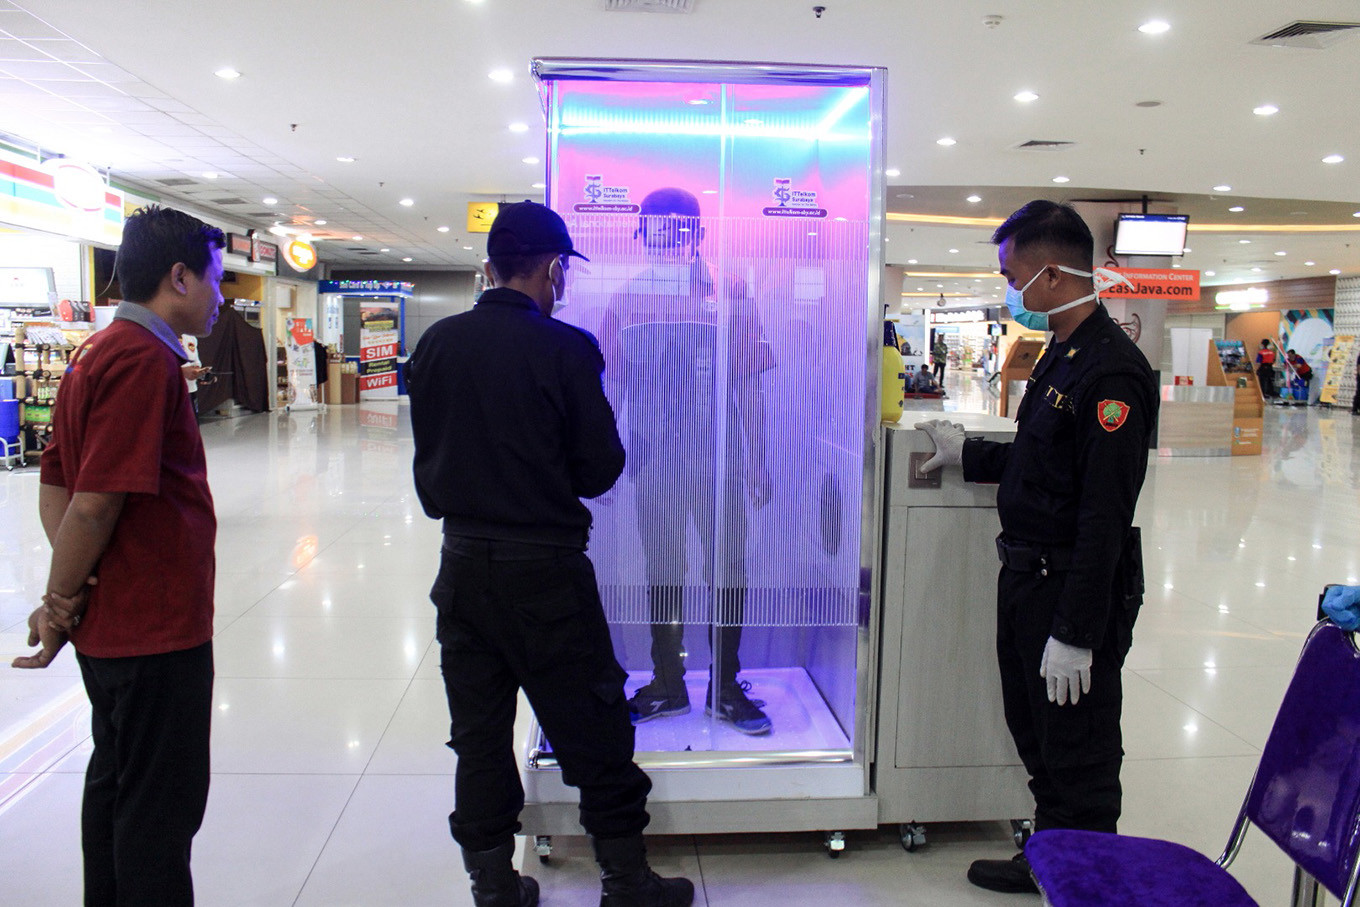 Indonesia to bar foreigners from entering in bid to curb imported cases